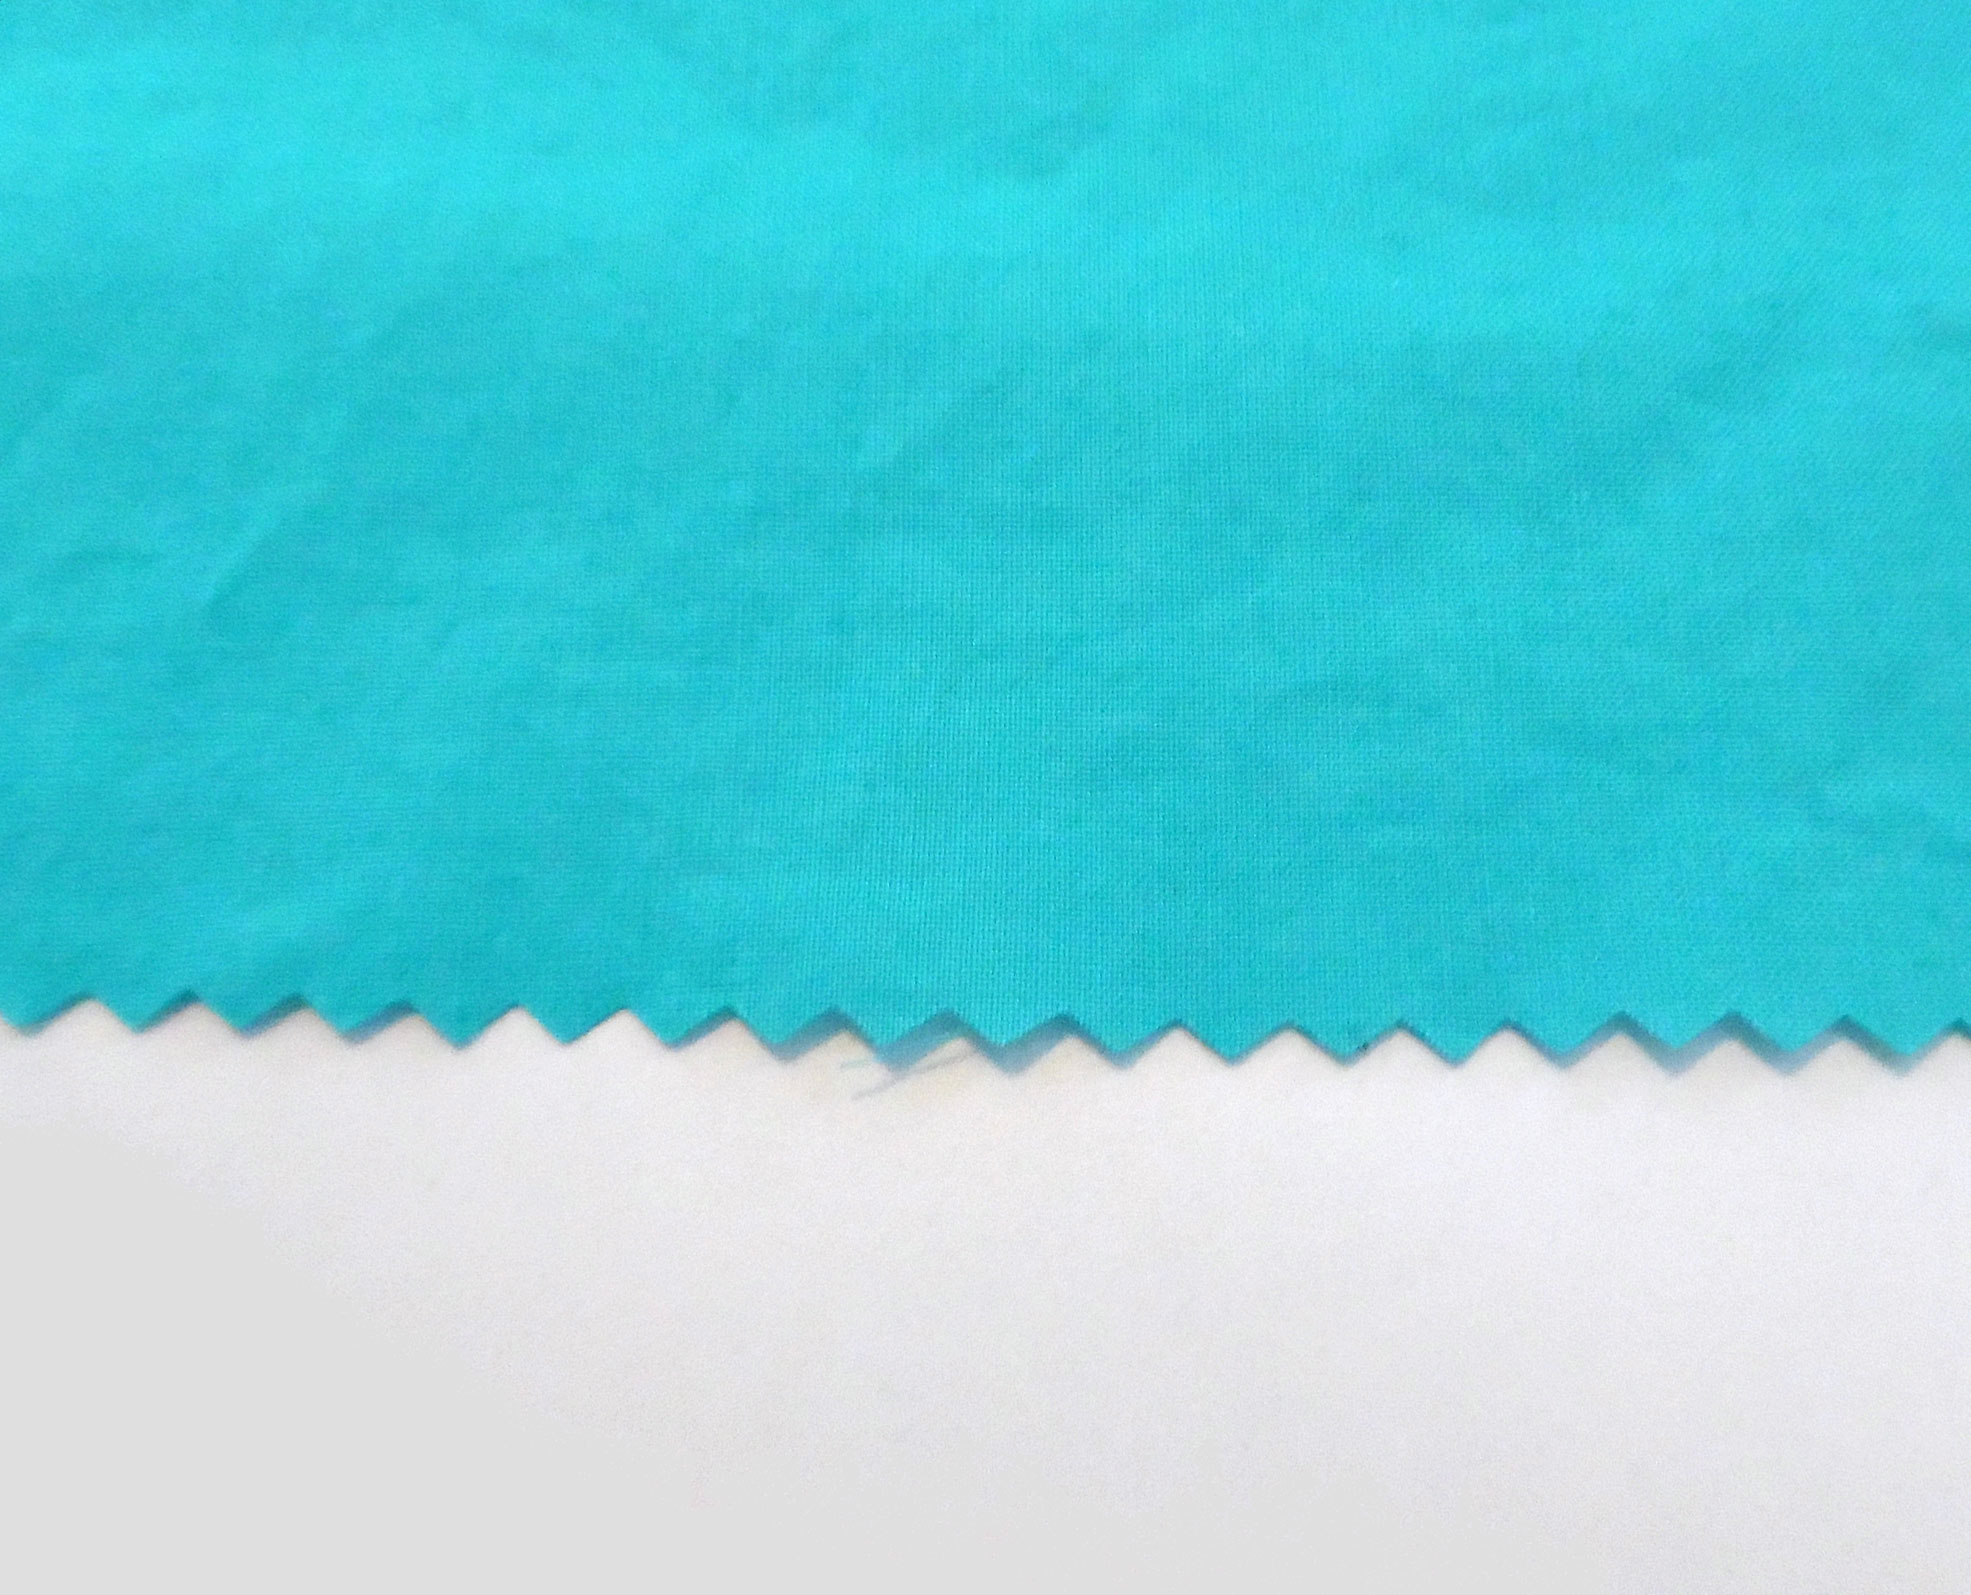 how to put edge on fabric